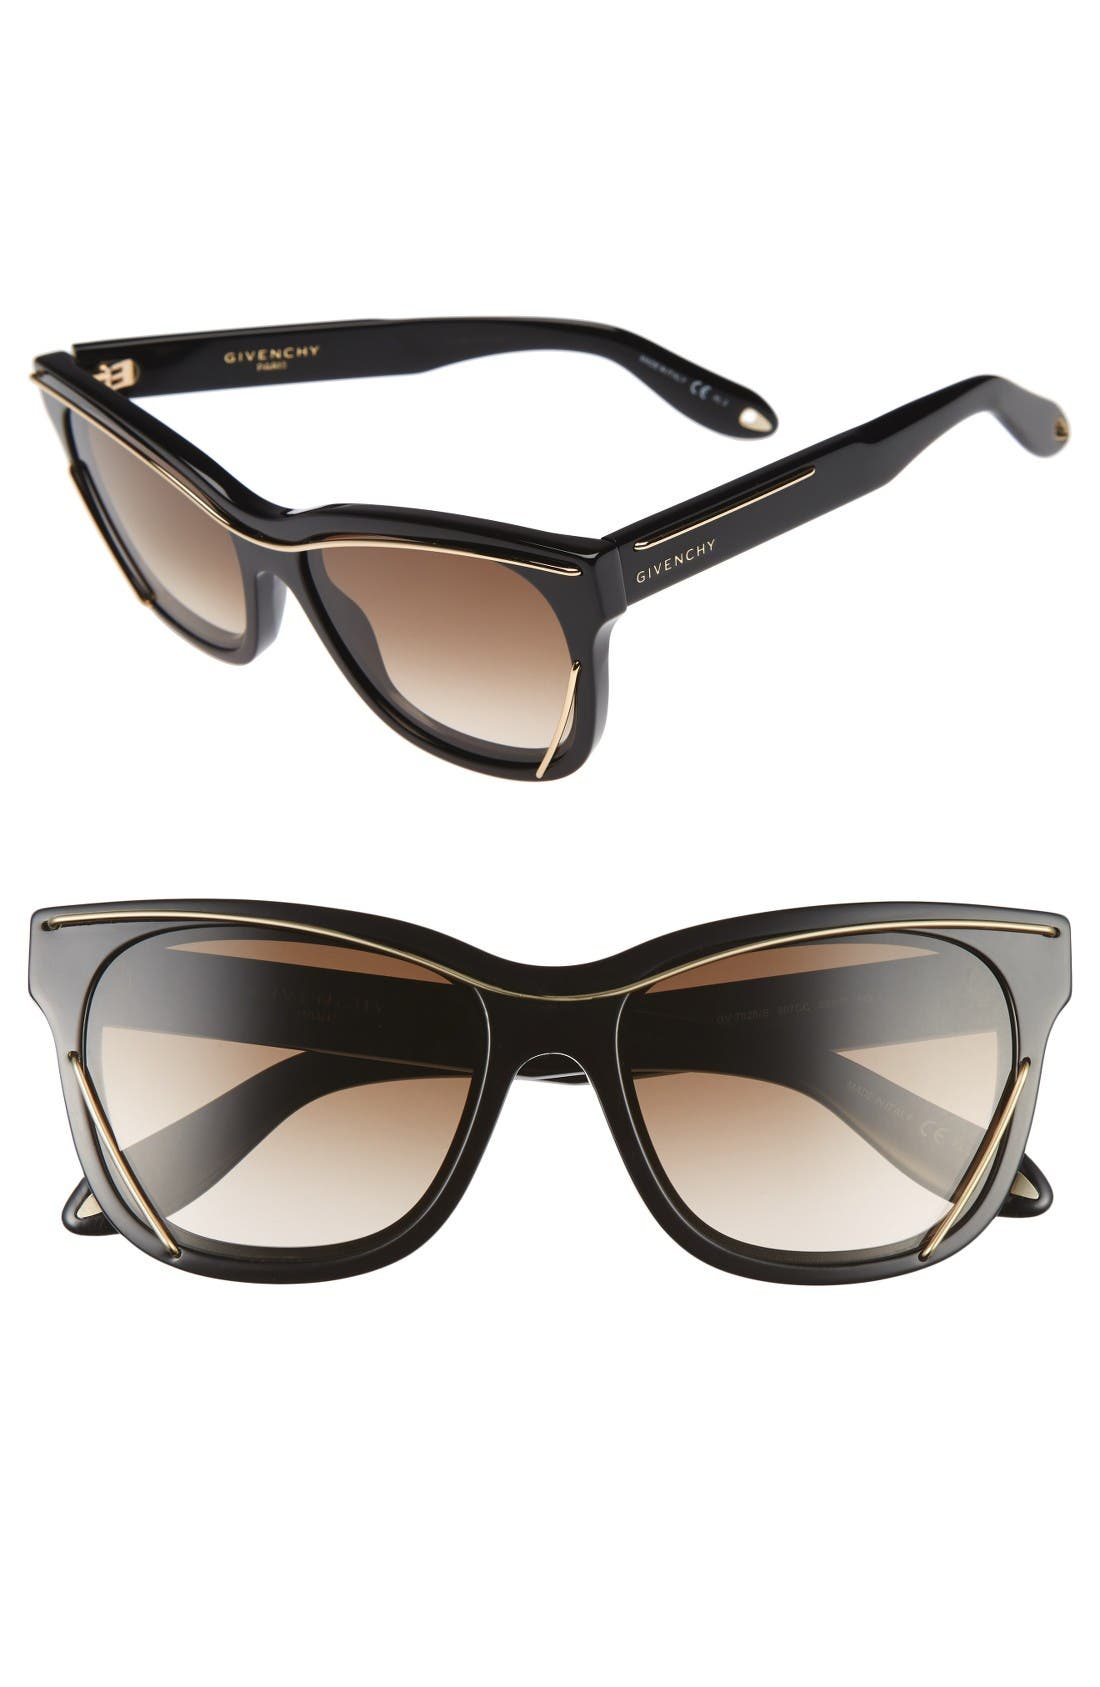 Alternate Image 1 Selected - Givenchy 56mm Cat Eye Sunglasses